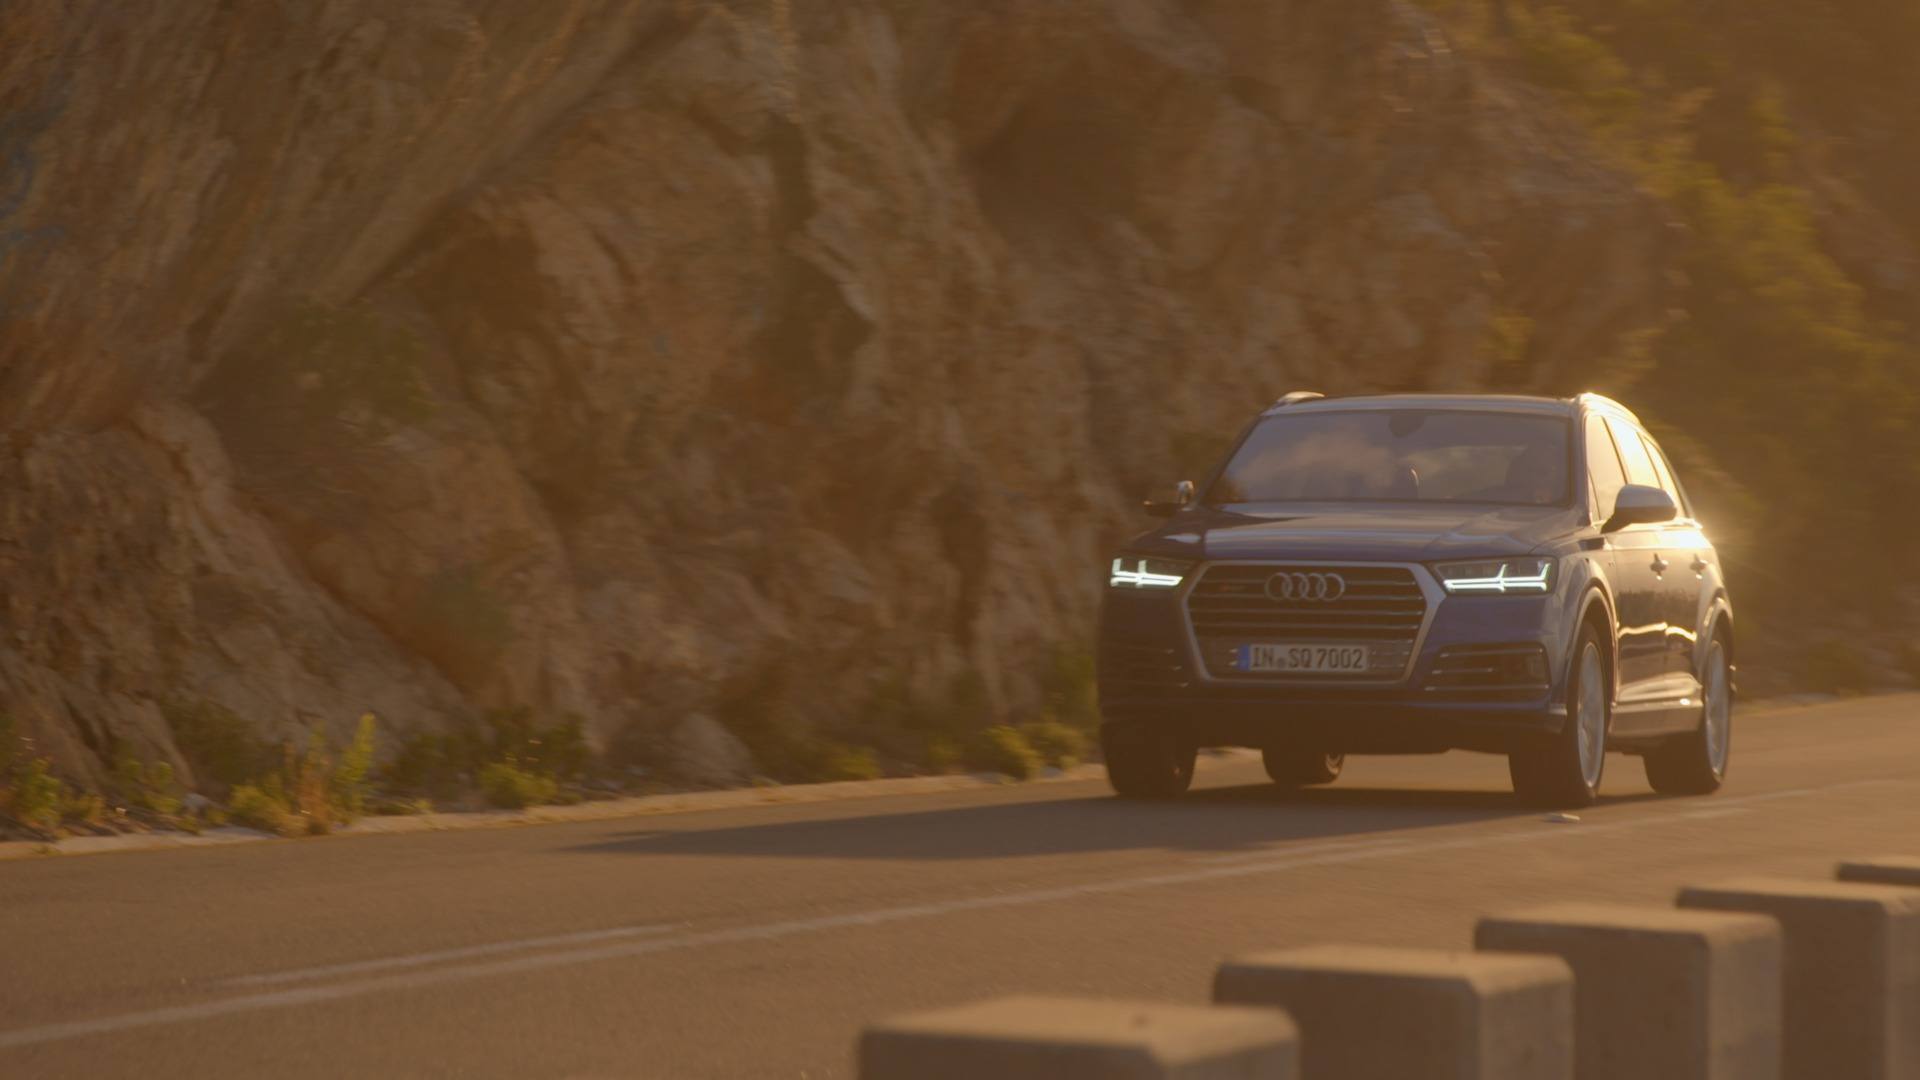 Audi SQ7 TDI - Driving Innovation